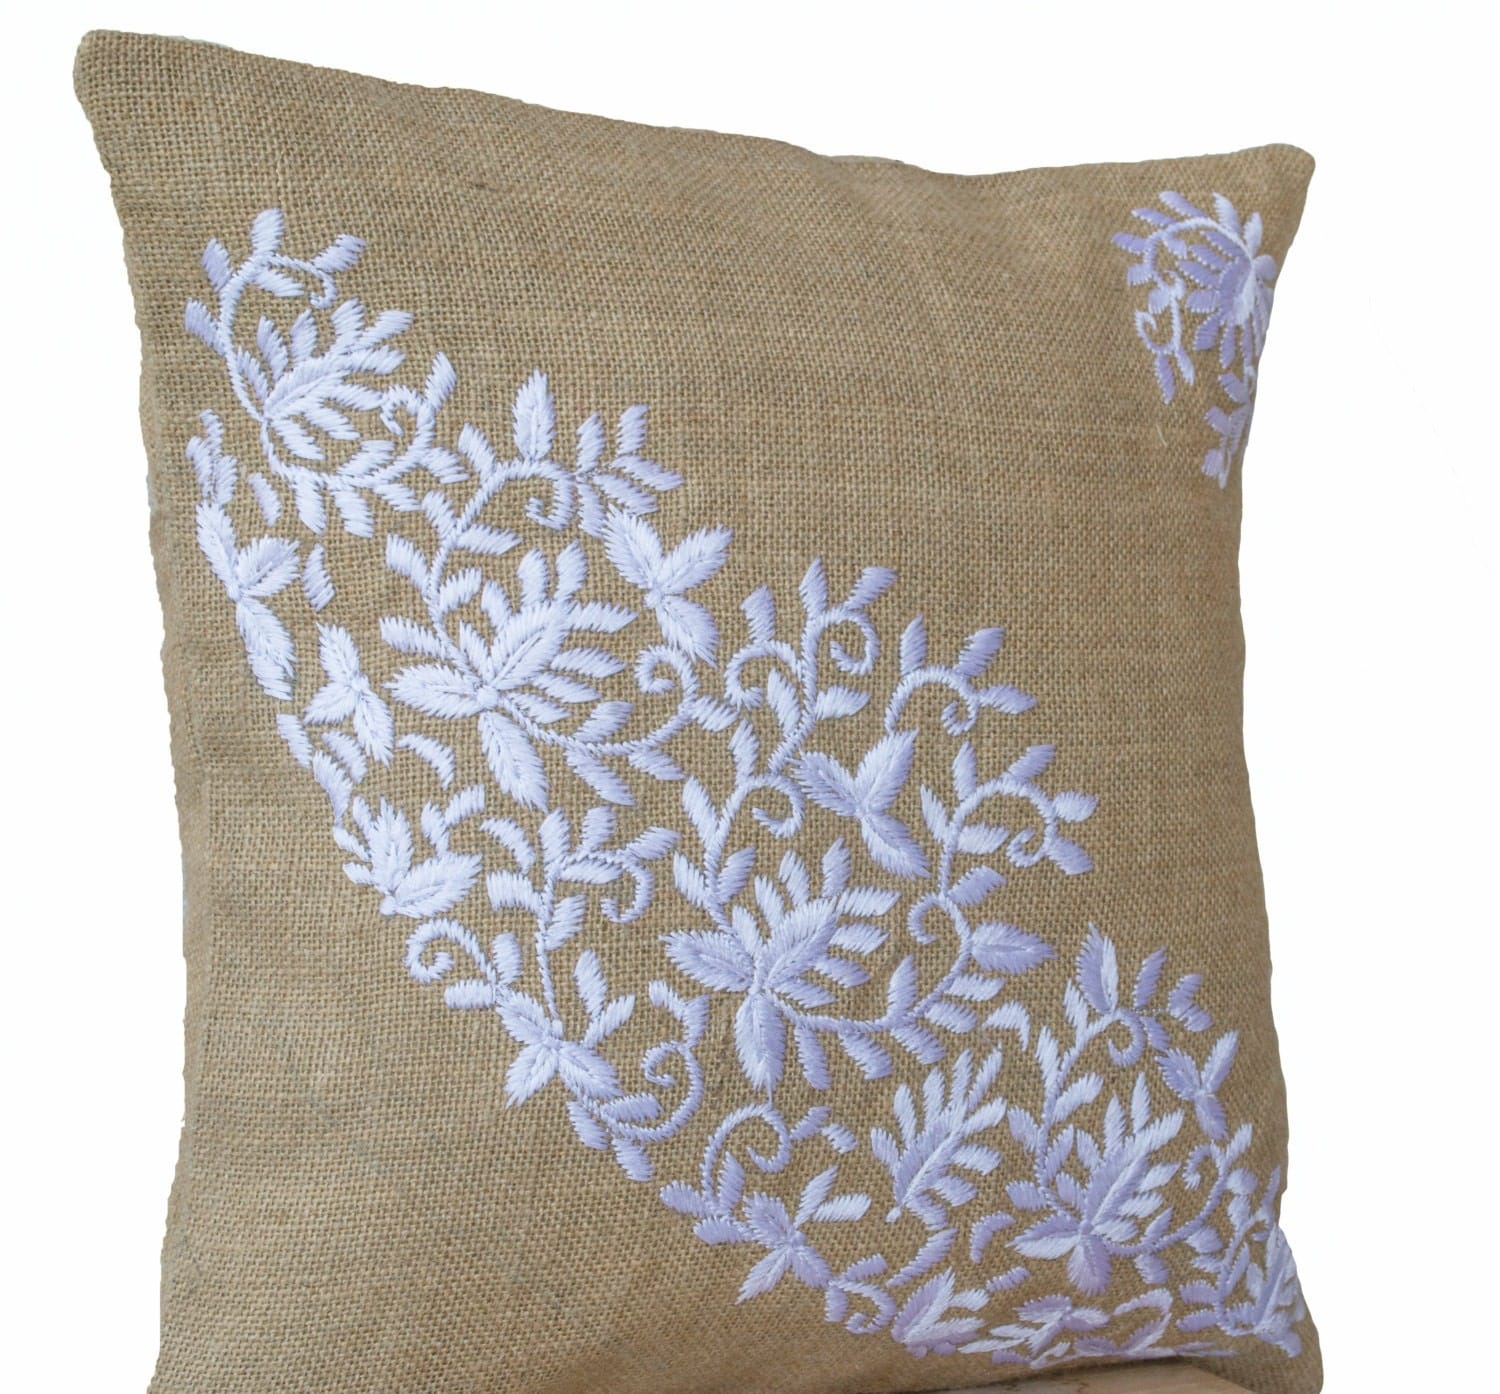 Burlap pillows case embroidered pillow white flower leaves